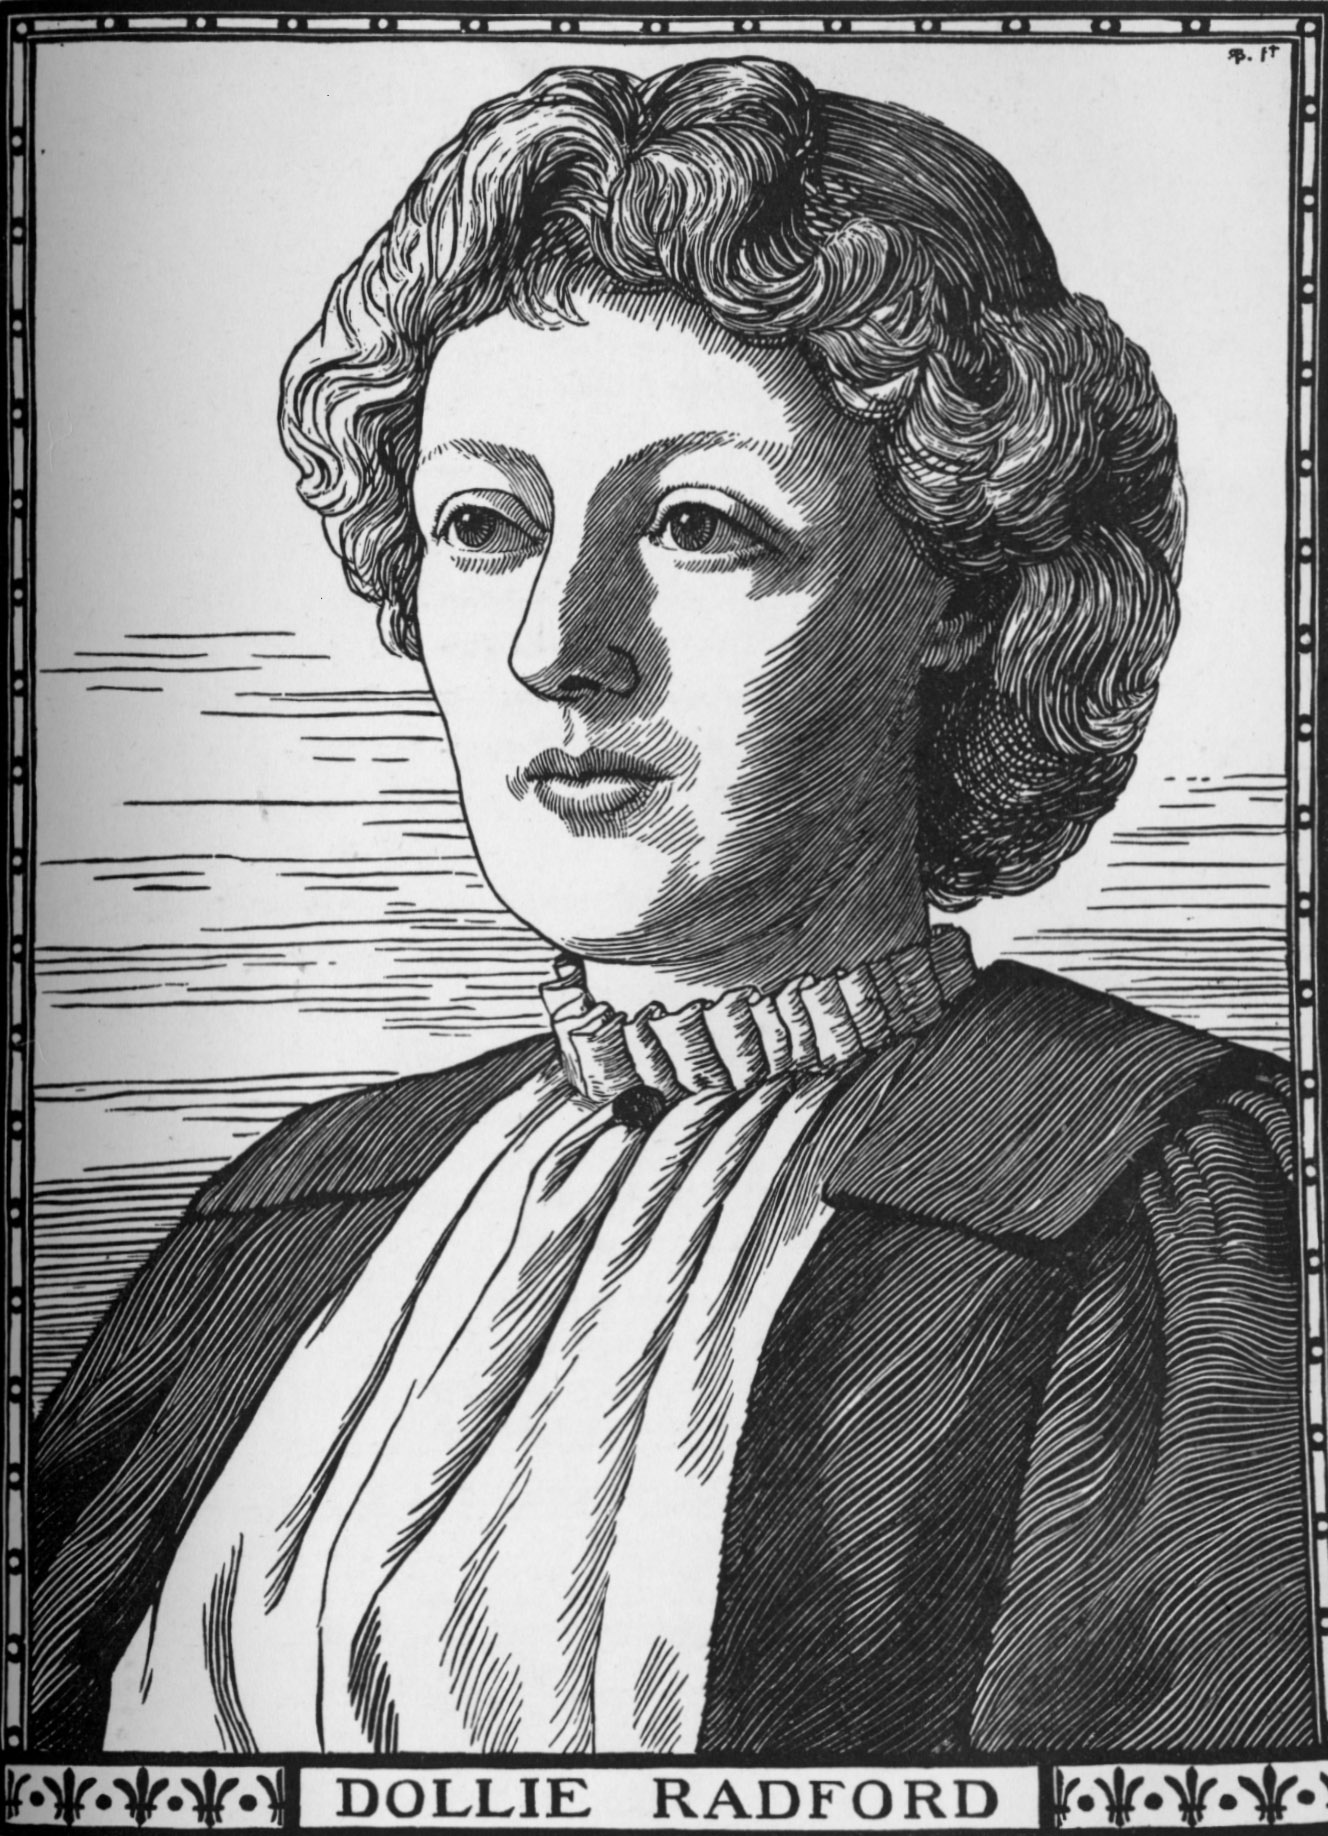 Image is a woodcut of Dollie Radford. She is shown from the chest up with ¾ face. She has short, curly hair. Her gaze is off to the left. She is wearing a light-coloured shirt with a ruffled collar and a dark jacket. The image is vertically displayed.